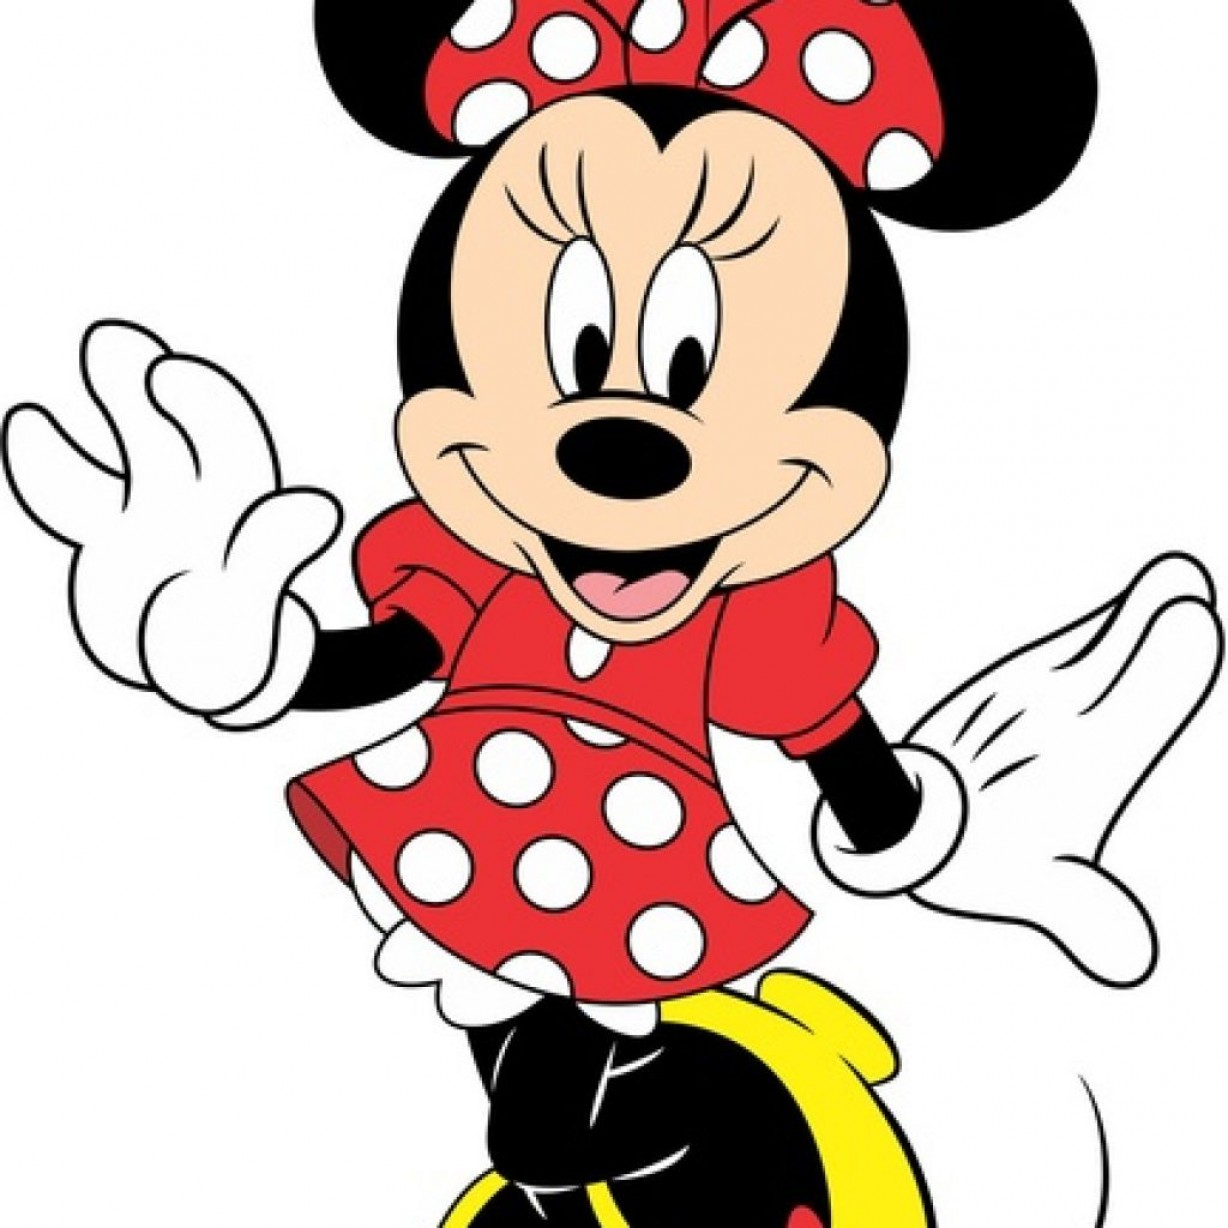 Free Minnie Mouse Clipart at GetDrawings.com.